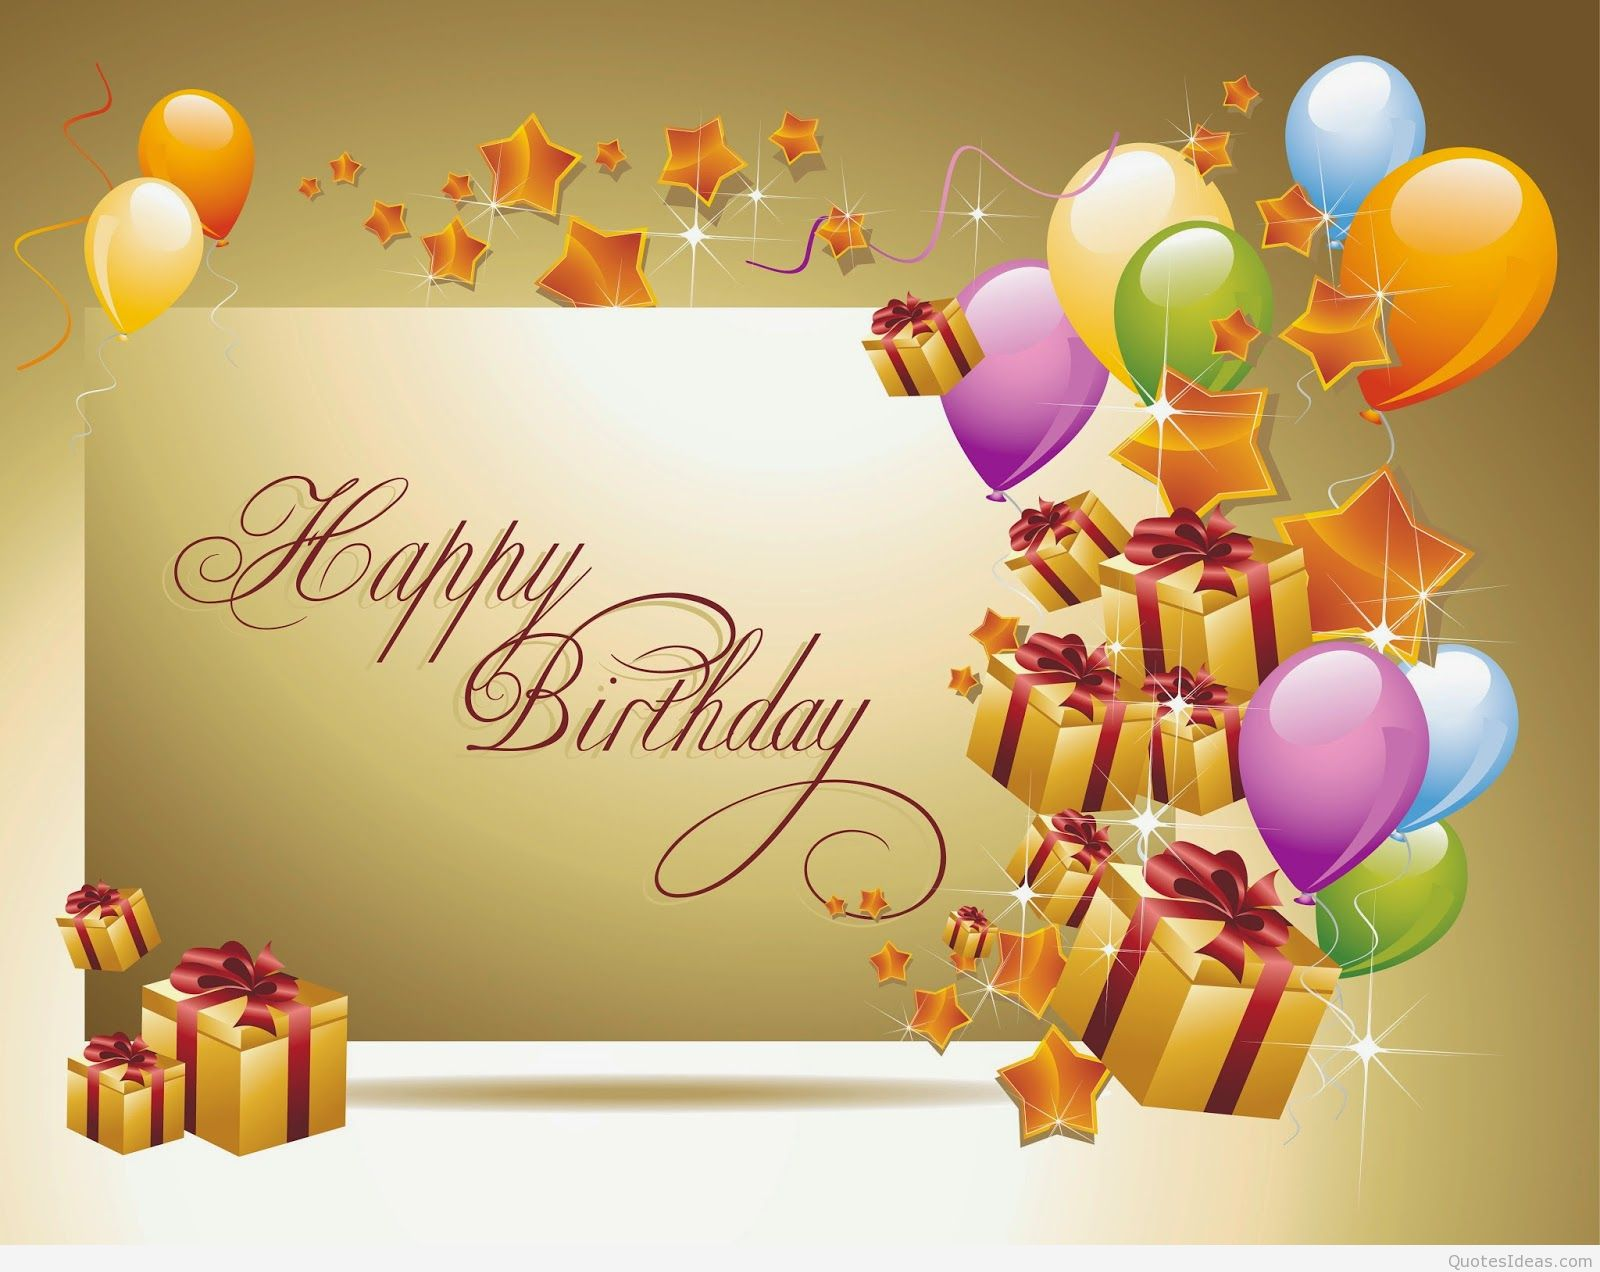 happy birthday wish you many more to come ; Happy-birthday-gift-wallpaper